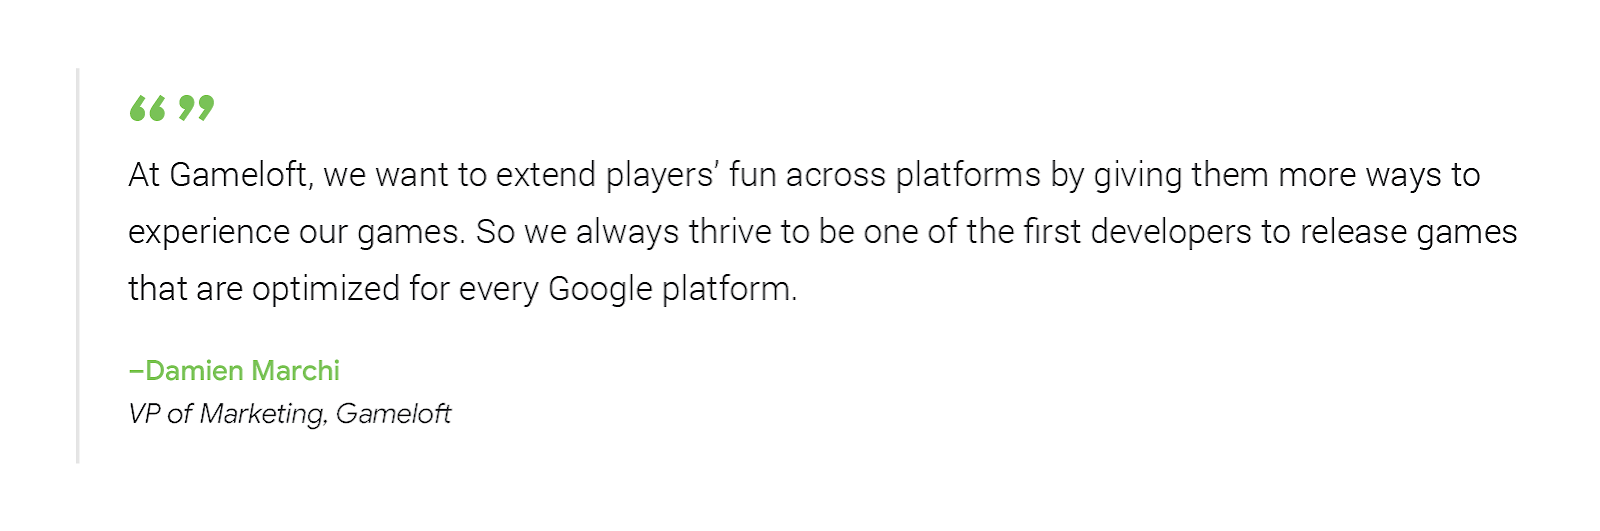 image of a single quote from Damien Marchi, VP of Marketing at Gameloft